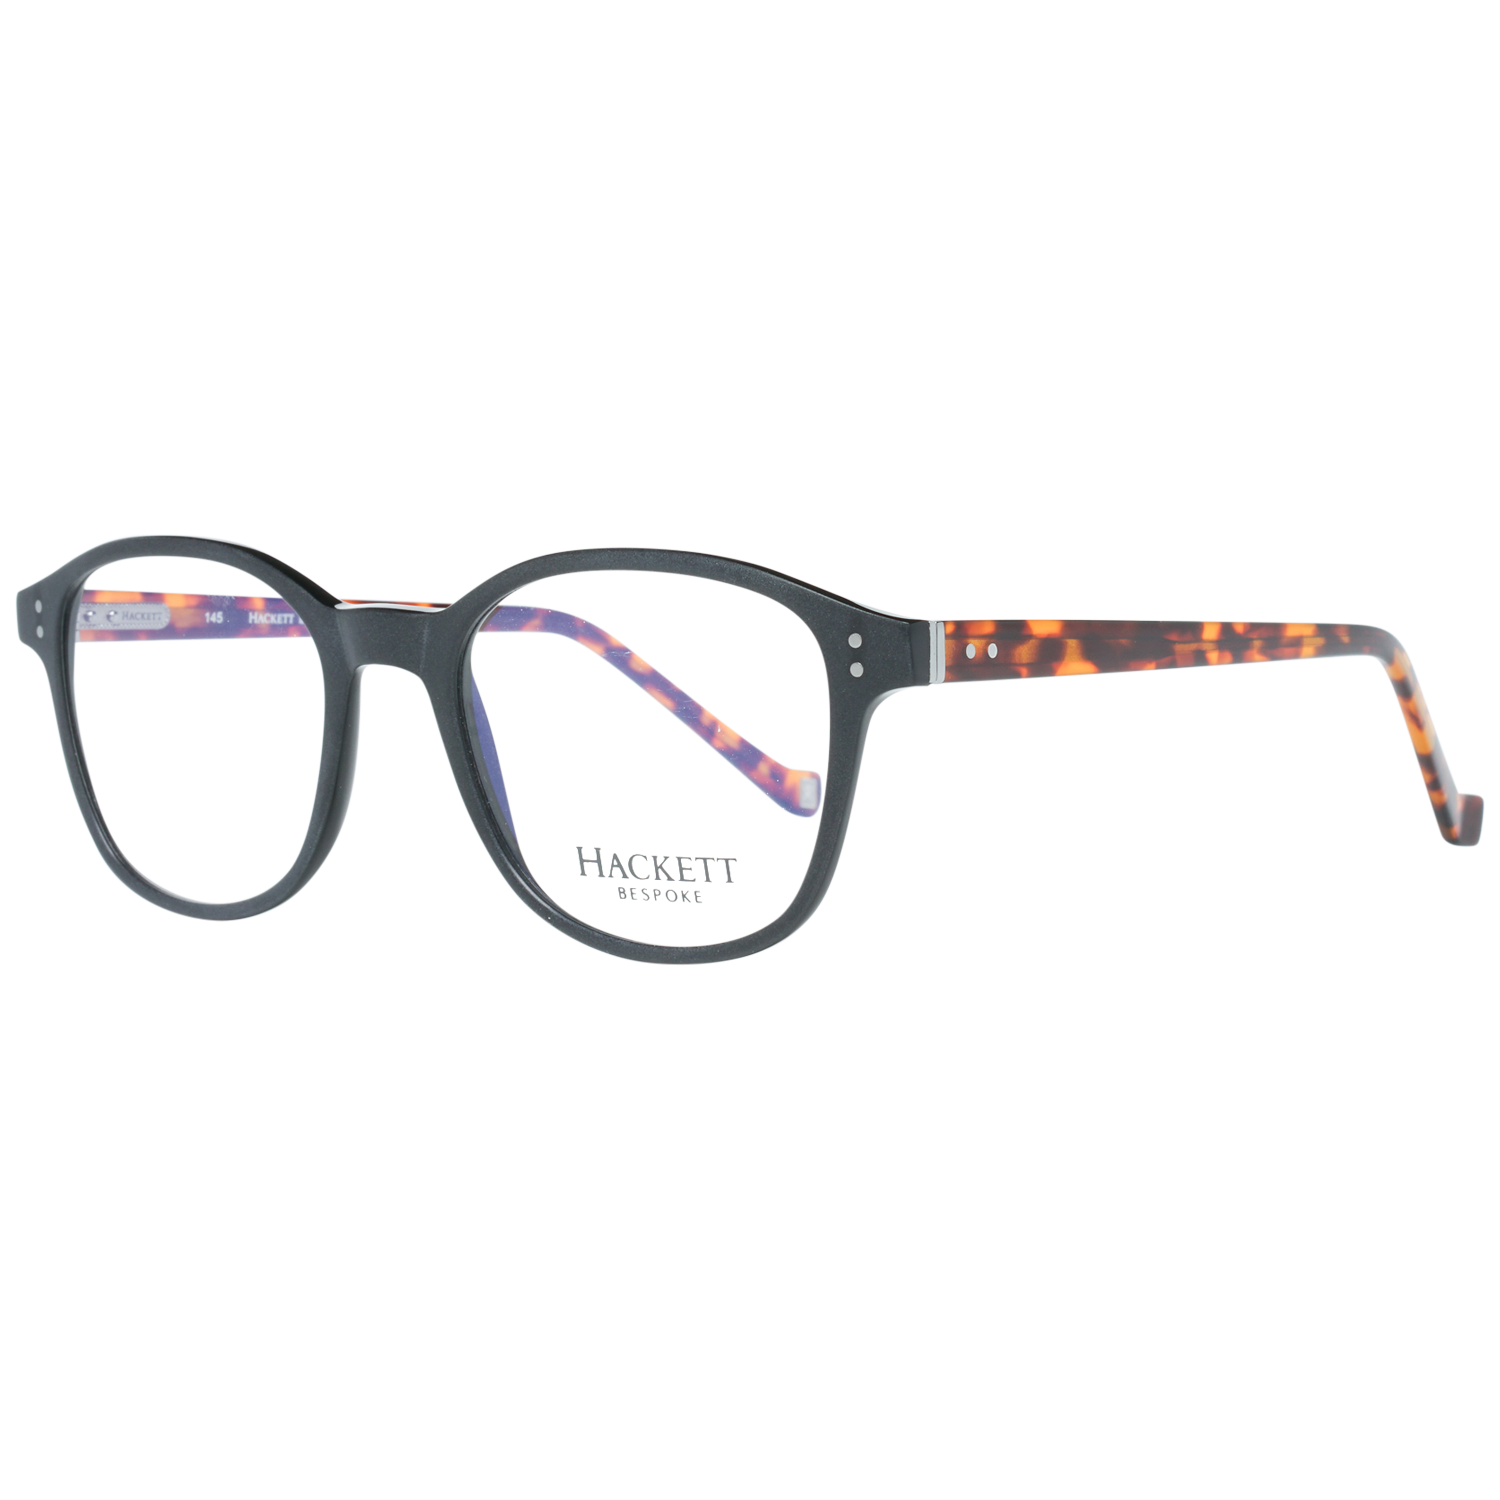 Hackett Bespoke Optical Frame HEB206 002 50 Black